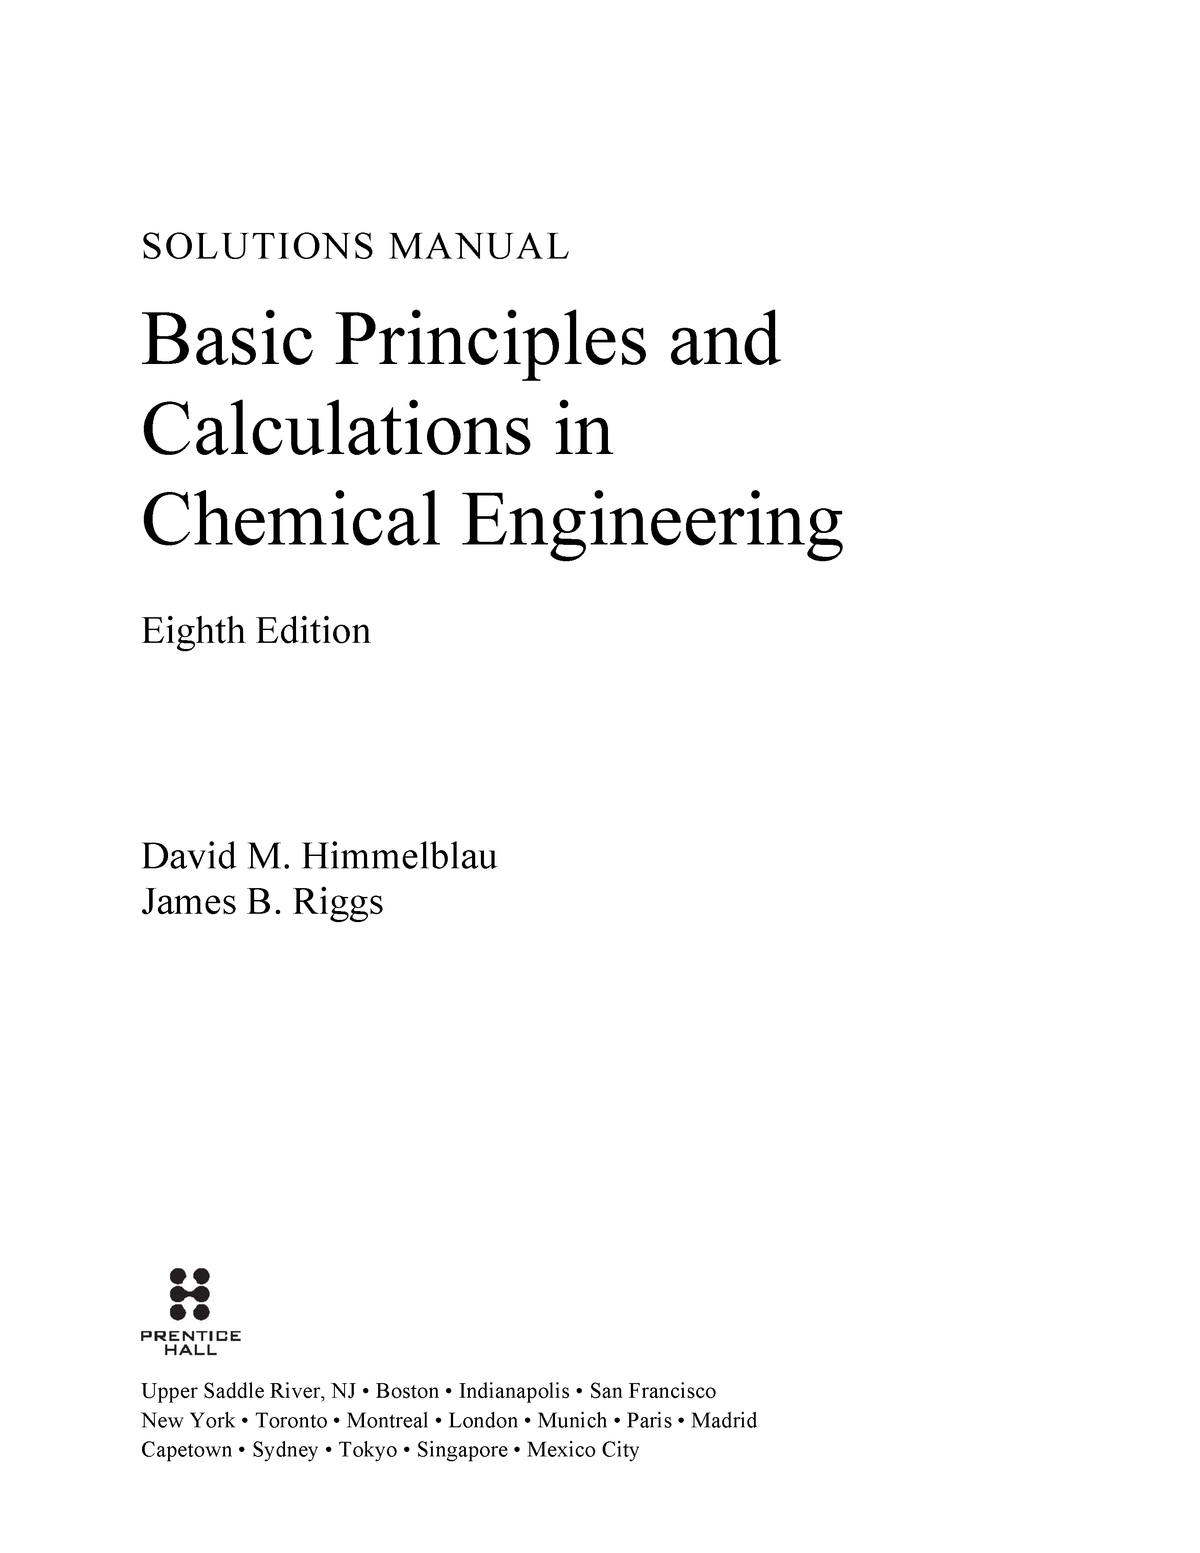 Basic Principles and Calculations in Cheical Engineering 8th